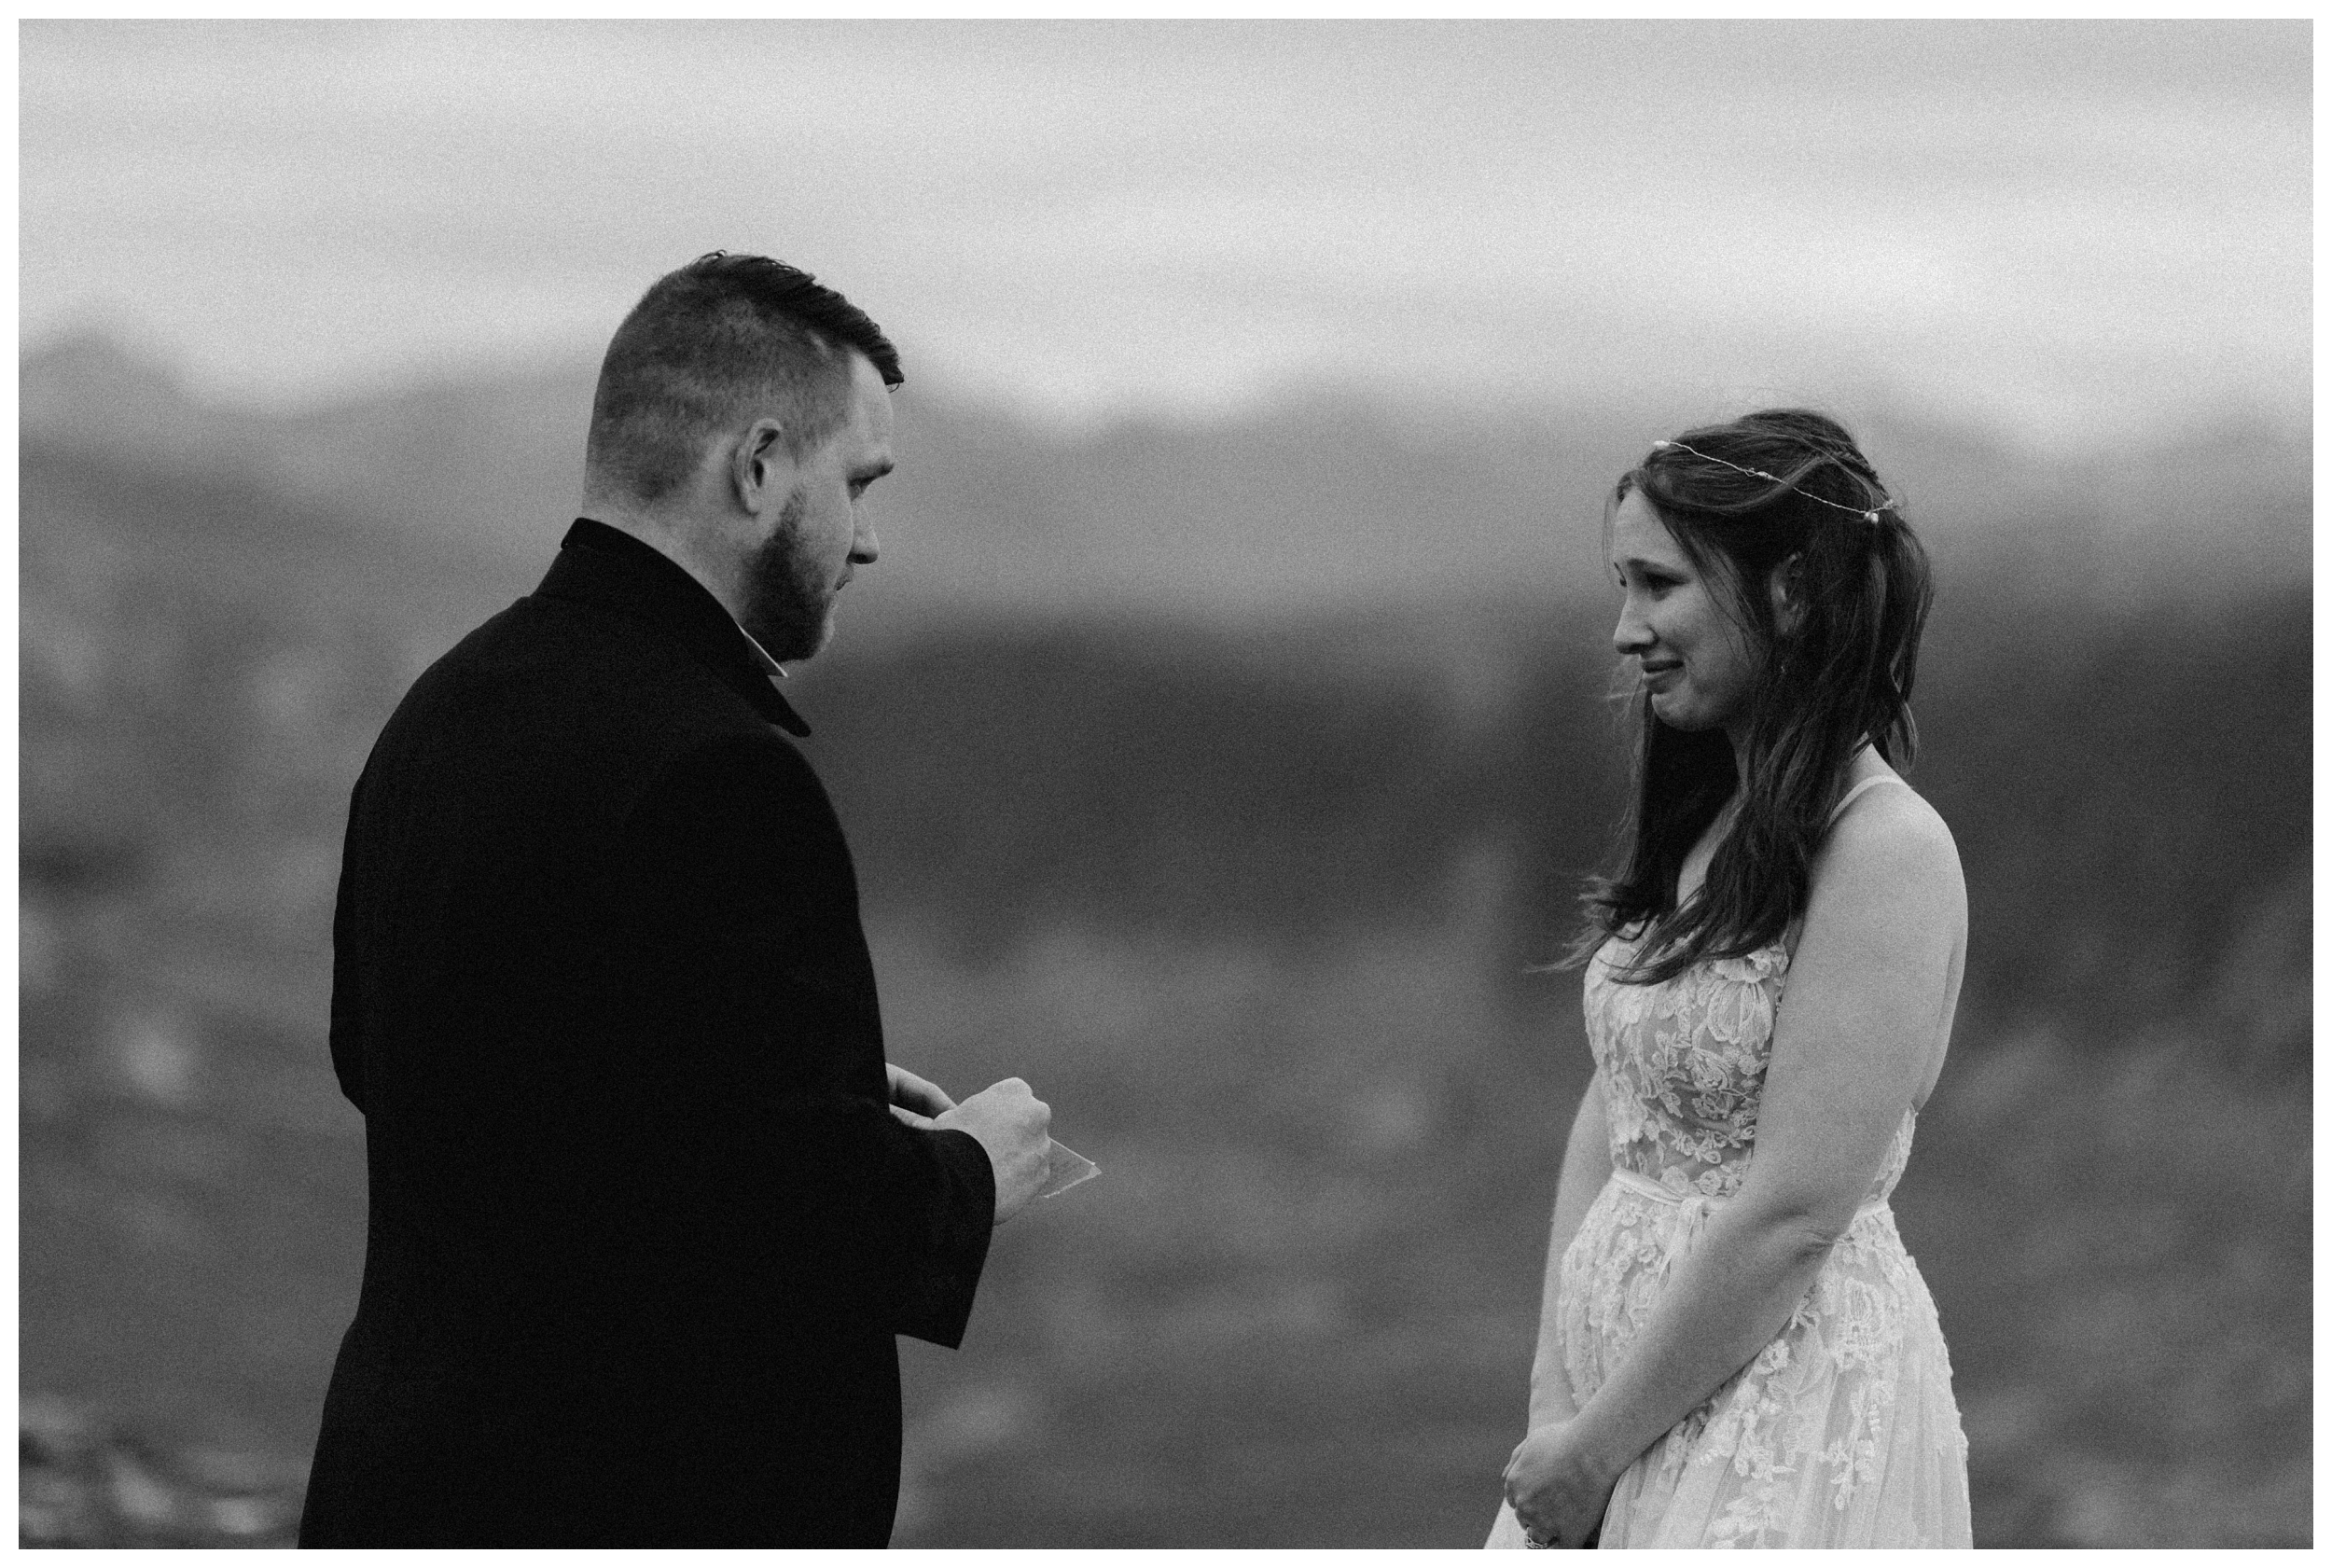 Daniel reads his marriage vows to Elissa during their private self solemnizing adventure destination elopement in the Scottish Highlands. Photo by Maddie Mae, Adventure Instead.